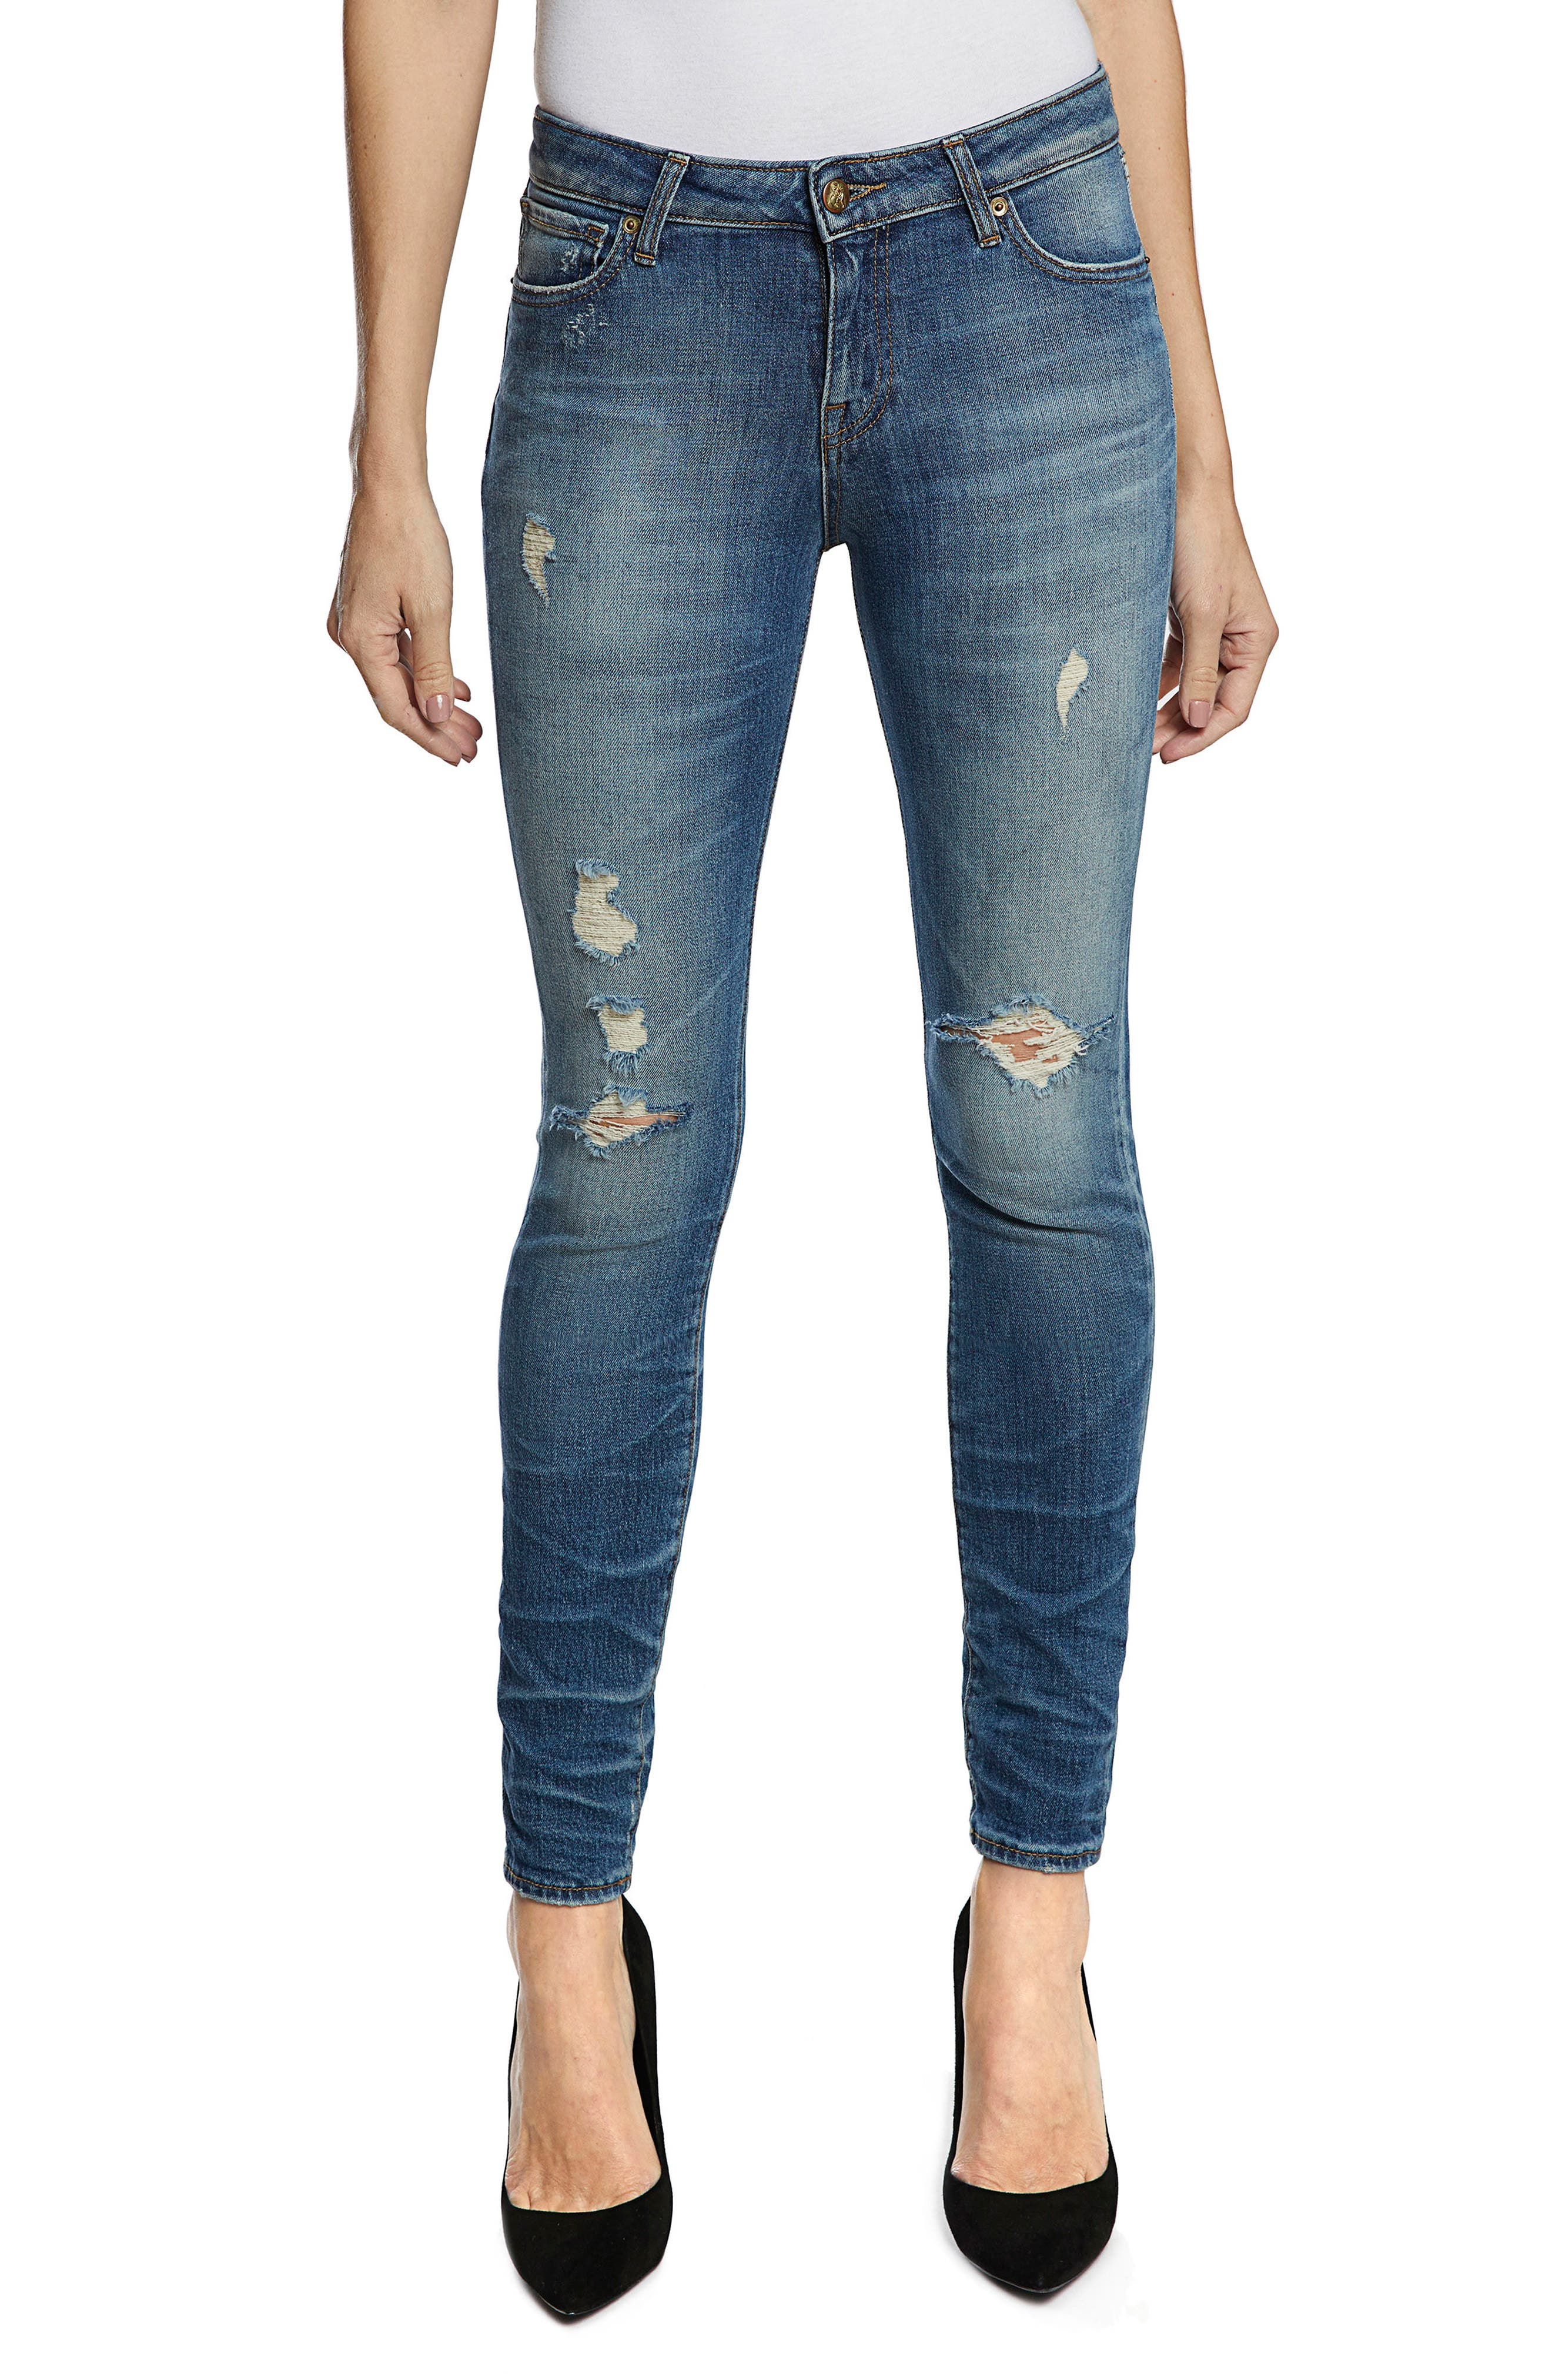 Camaro Ankle Skinny Jeans,                         Main,                         color, 490